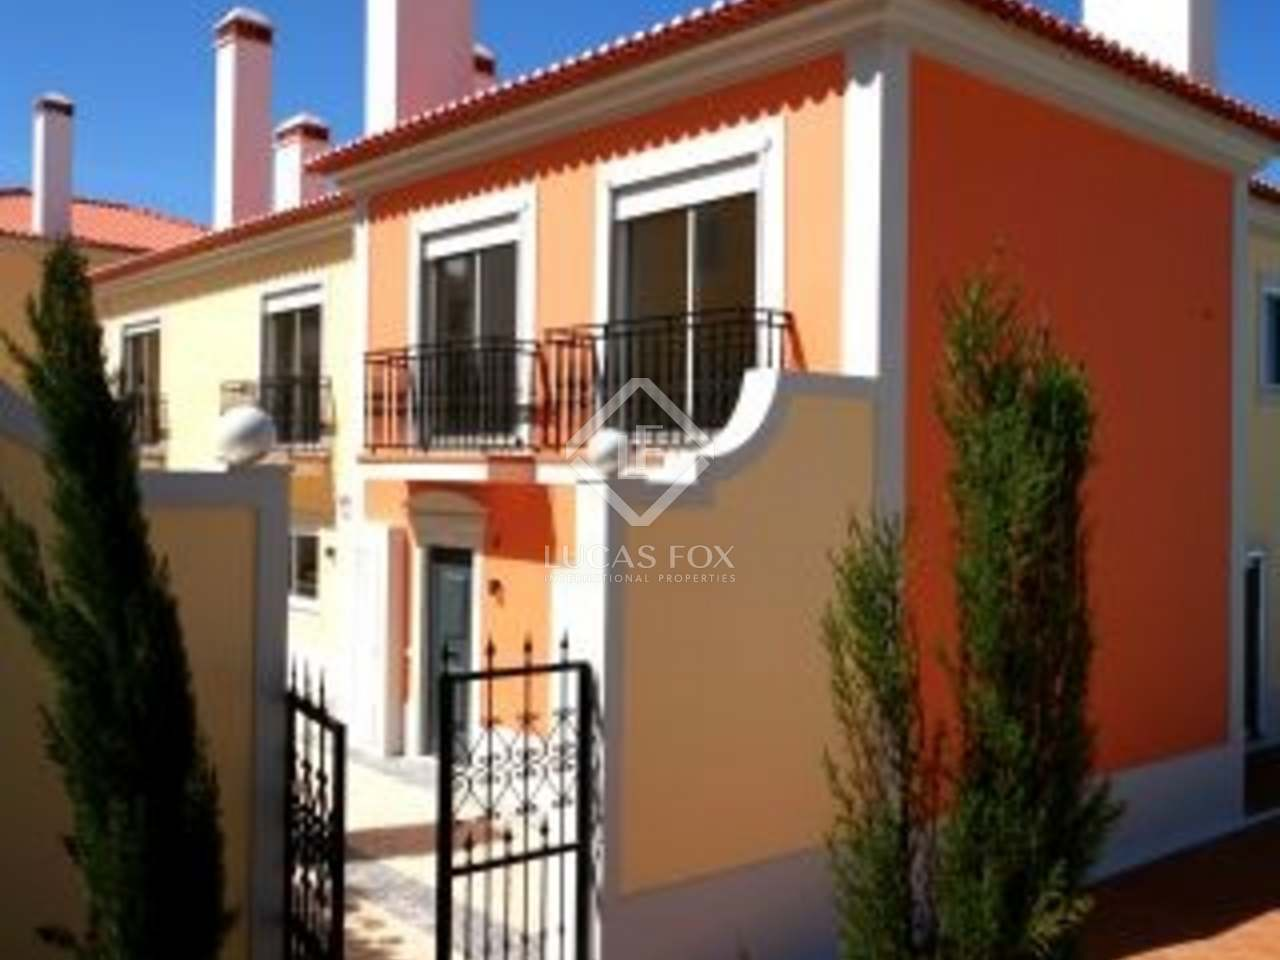 Fabulous 3 bedroom townhouse for sale with sea views and golf course. Silver Coast